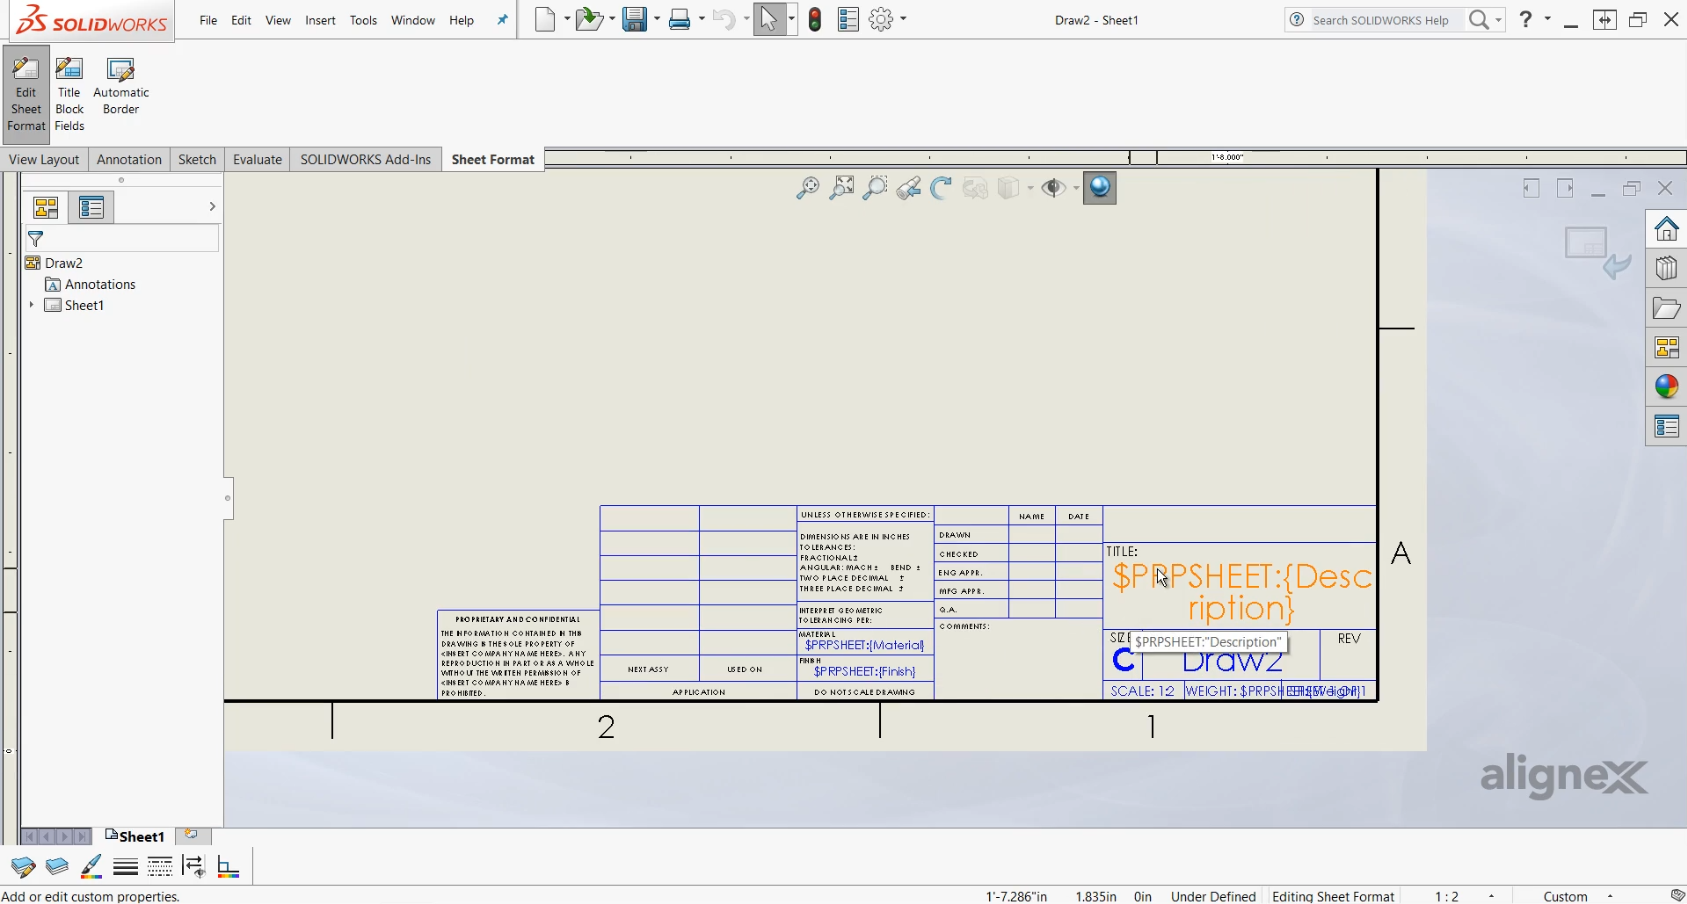 How to Create Drawing Templates and Sheet Formats in SOLIDWORKS